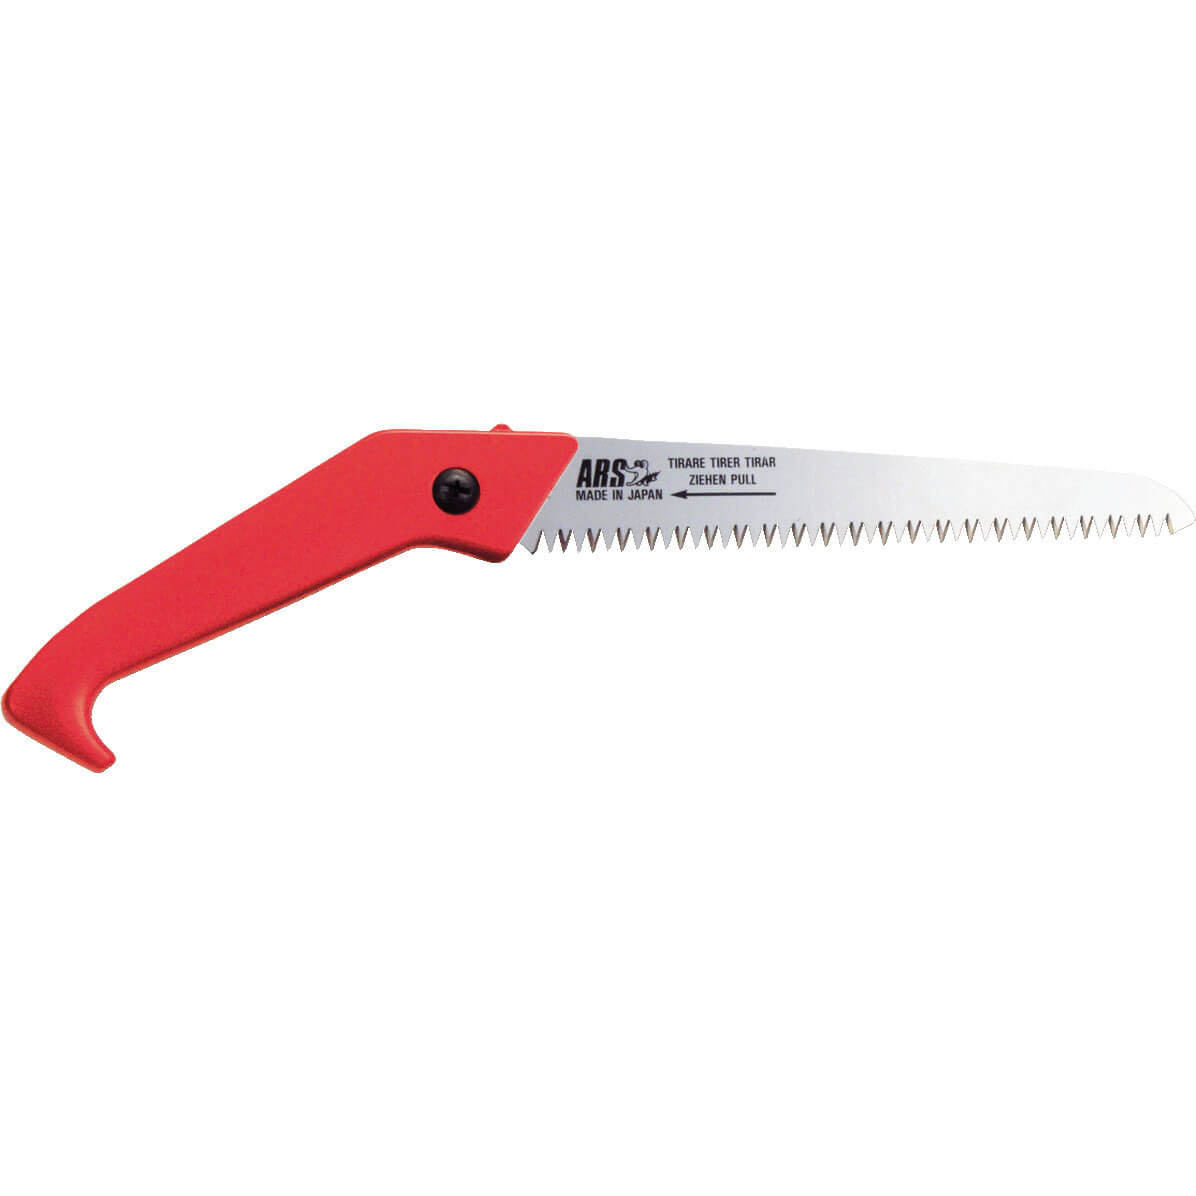 Image of ARS CAM Pruning Saw 336mm